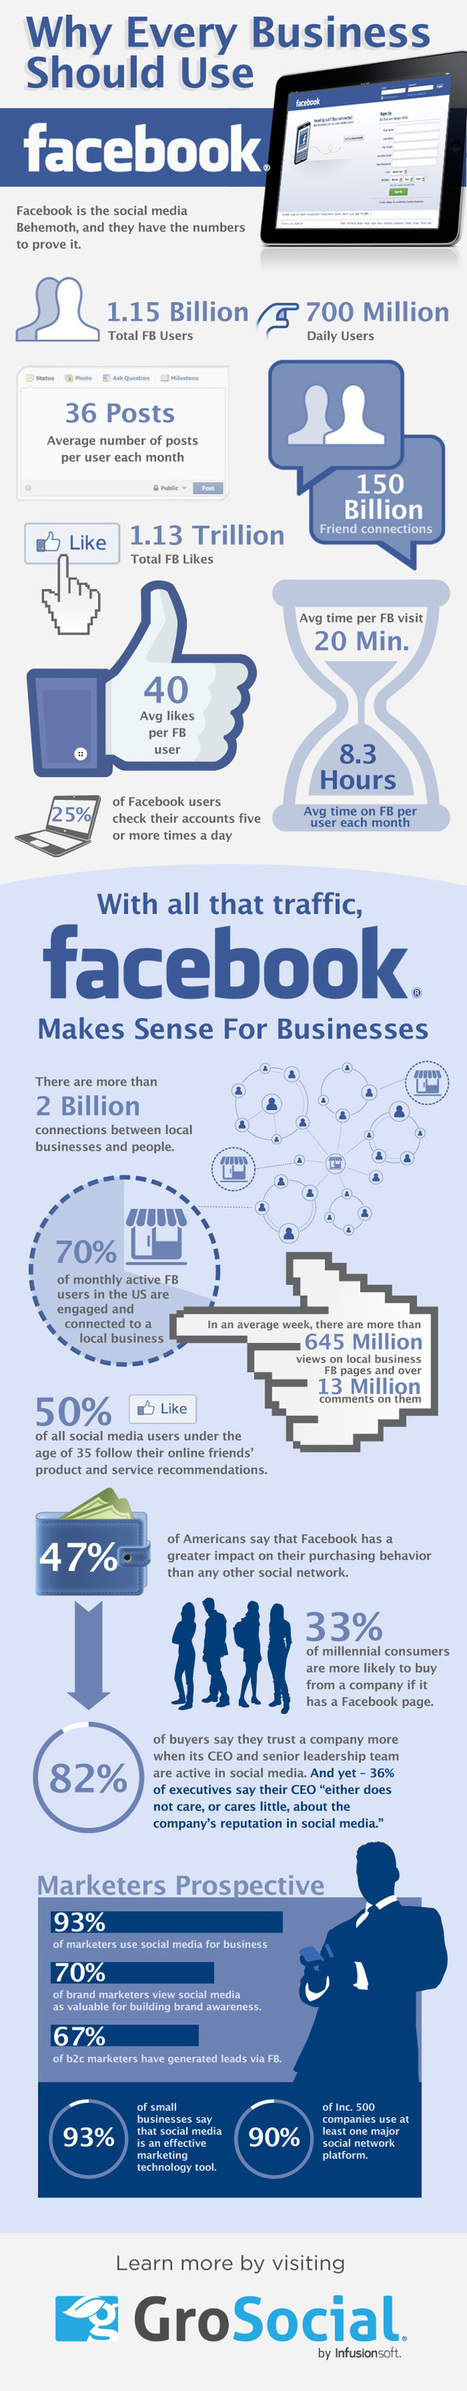 Why Every Business Should Use Facebook | SproutSocial.com | IMC-Marcoms2014 | Scoop.it